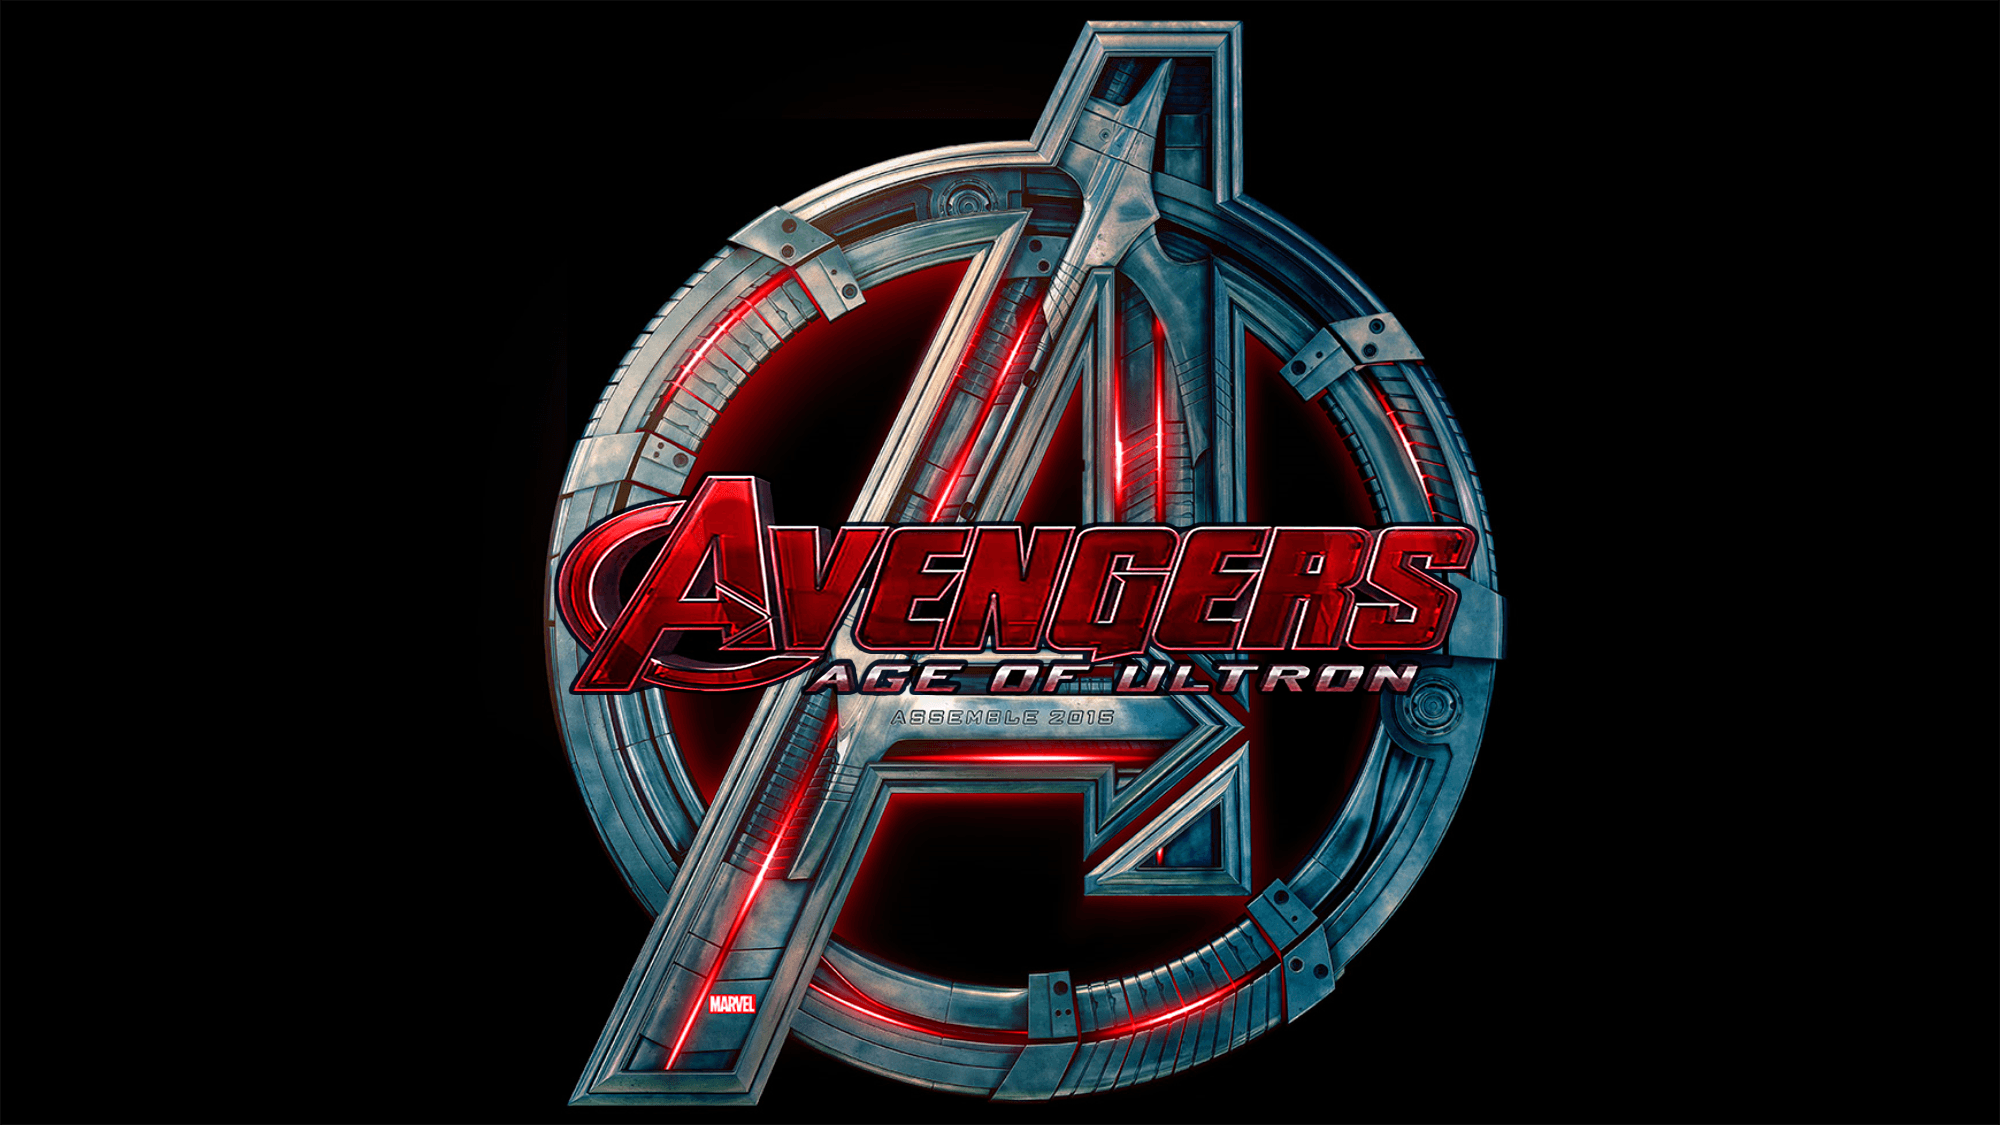 avenger logo wallpaper posted by ethan cunningham avenger logo wallpaper posted by ethan